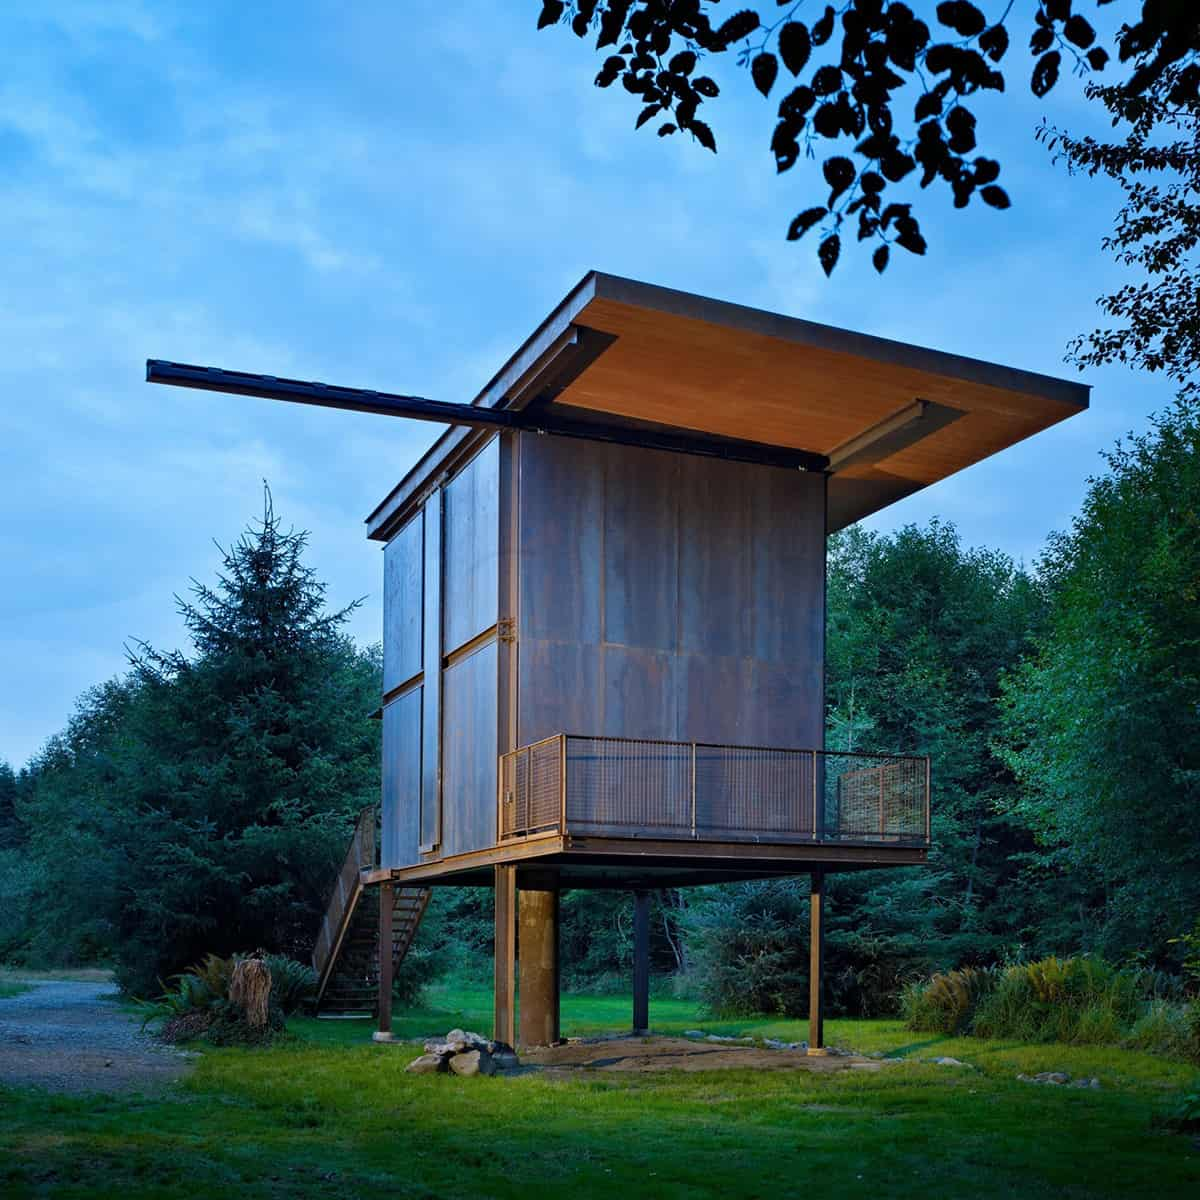 Tiny Home Designs: 7 Clever Ideas For A Secure Remote Cabin